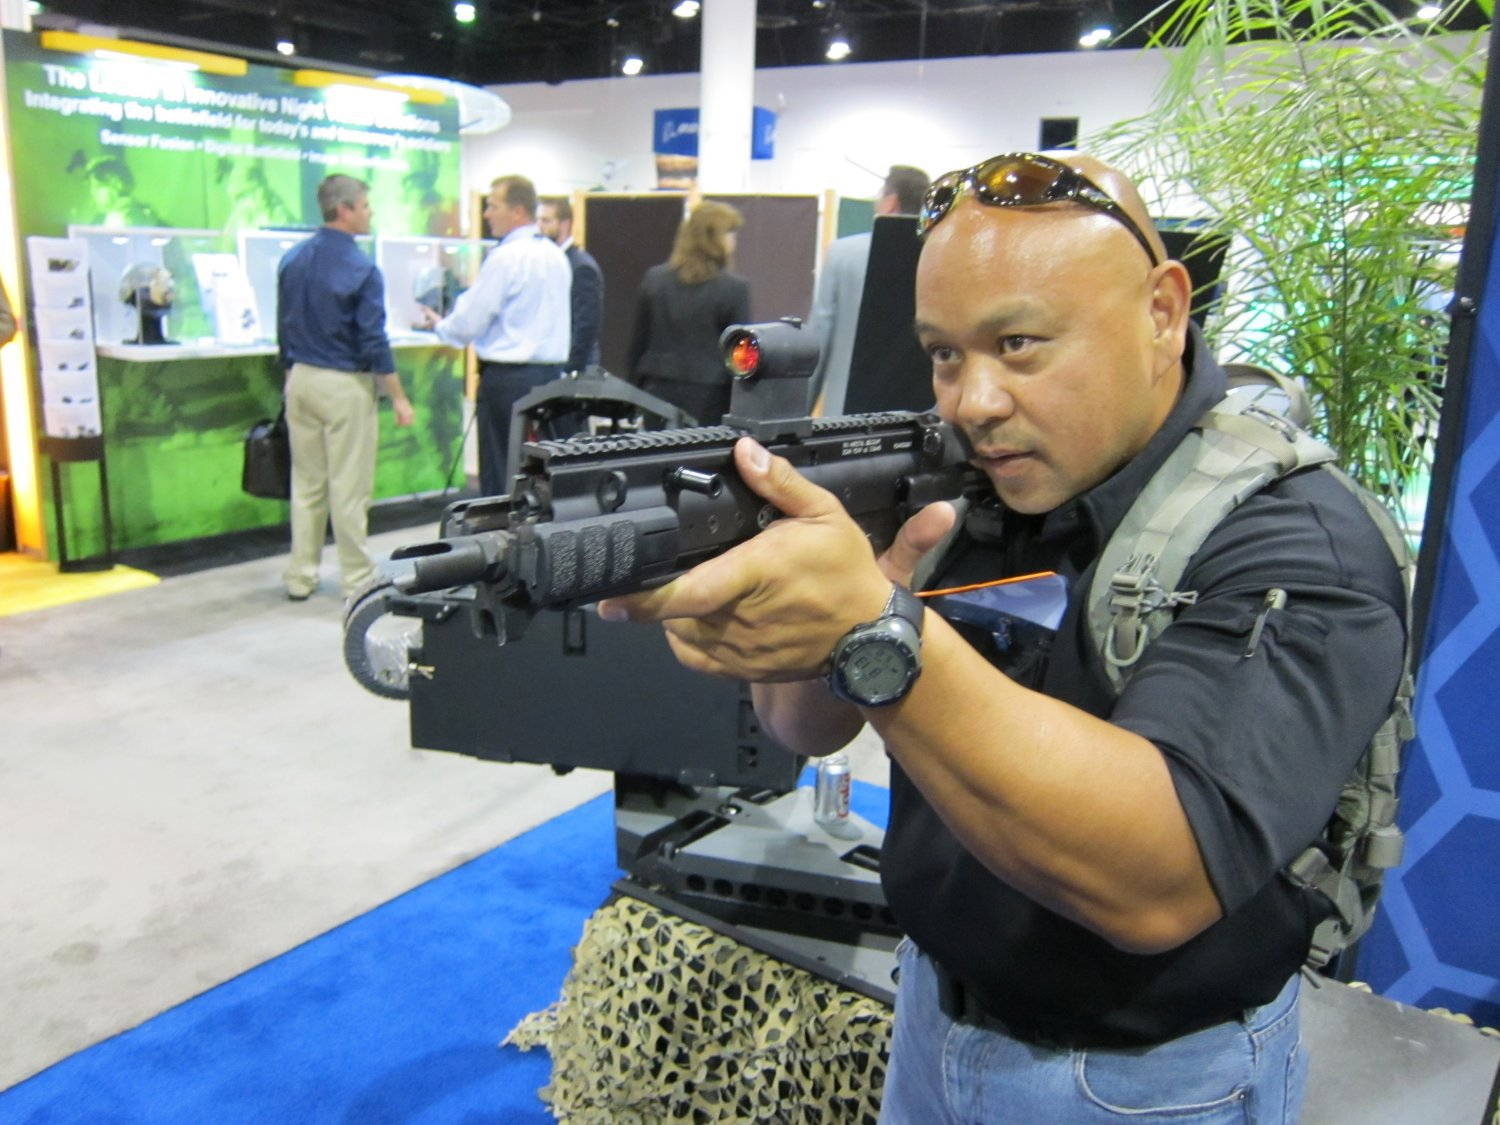 FNH USA FN SCAR PDW Compact Assault SBR 5.56mm NATO Felipe Jose SOFIC 2011 DefenseReview DR 7 <!  :en  >FN SCAR PDW (Personal Defense Weapon) Compact Select Fire 5.56mm NATO SBR for Special Operations Forces (SOF) Applications: DR Handles the Weapon at SOFIC 2011 and NDIA Small Arms Symposium 2011 (Photos!)<!  :  >